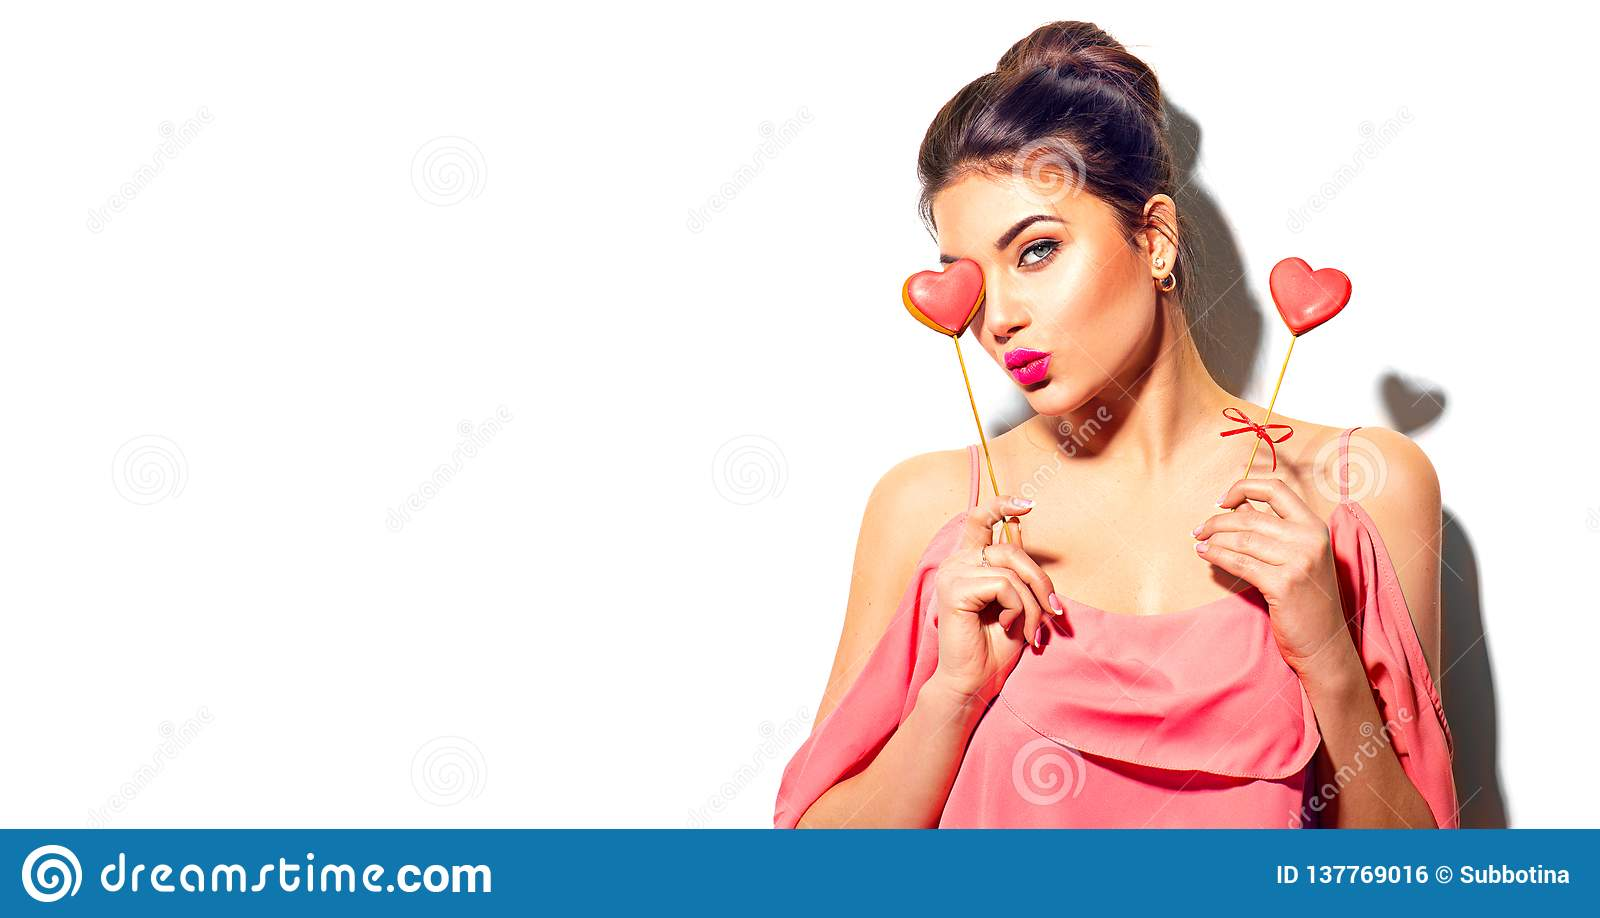 Valentines Day. Beauty joyful young fashion model girl with Valentine heart shaped cookies in her hands